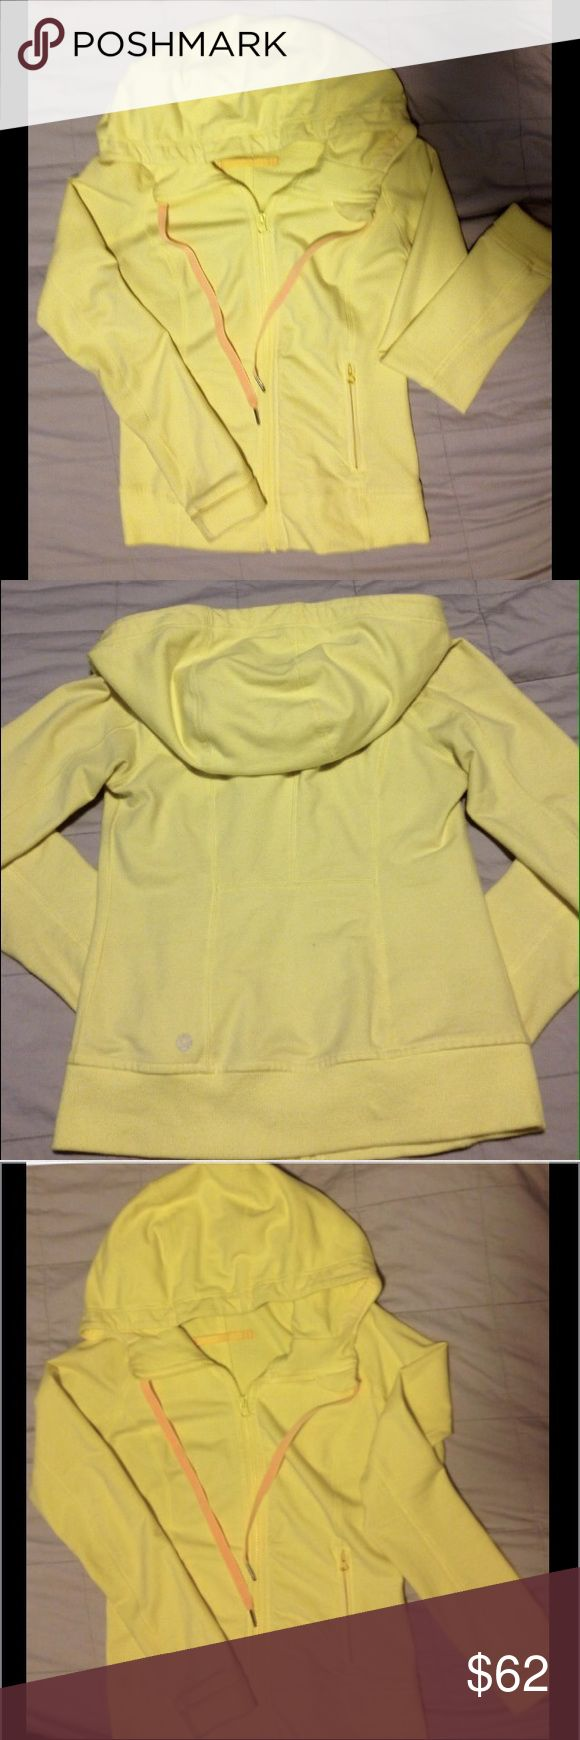 Lululemon Yellow Hoodie w/Zip Up Pockets Size 6 Lululemon Athletica Yellow Zip Up Hoodie Jacket w/Zip Up Pockets and Pull Tie Hood, Size 6 (Has Size Dot) Excellent Like New Condition, worn once. Awesome Jacket! lululemon athletica Jackets & Coats